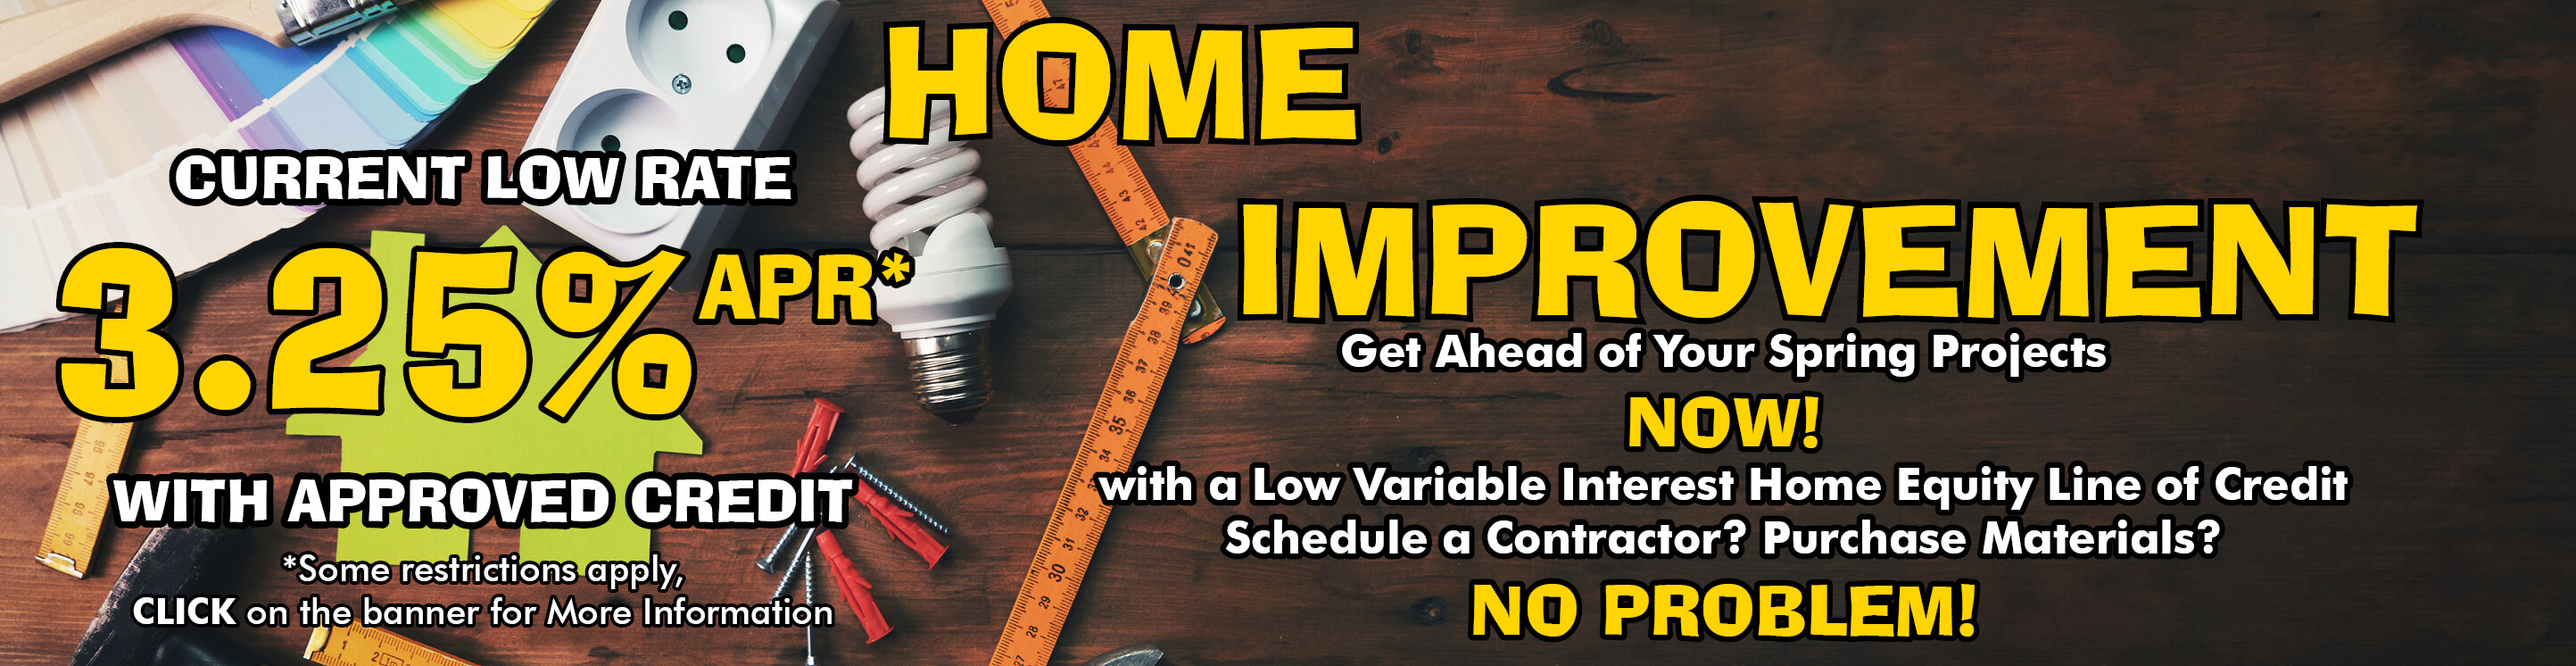 Dark wood background with a Light bulb, Tape Measure and paint swatches on it. The words, Home Improvement, Get ahead of your Spring projects with a Low variable Interest Home Equity Line of Credit are on the background. Current Low Rate, 3.25% APR with Approved Credit.